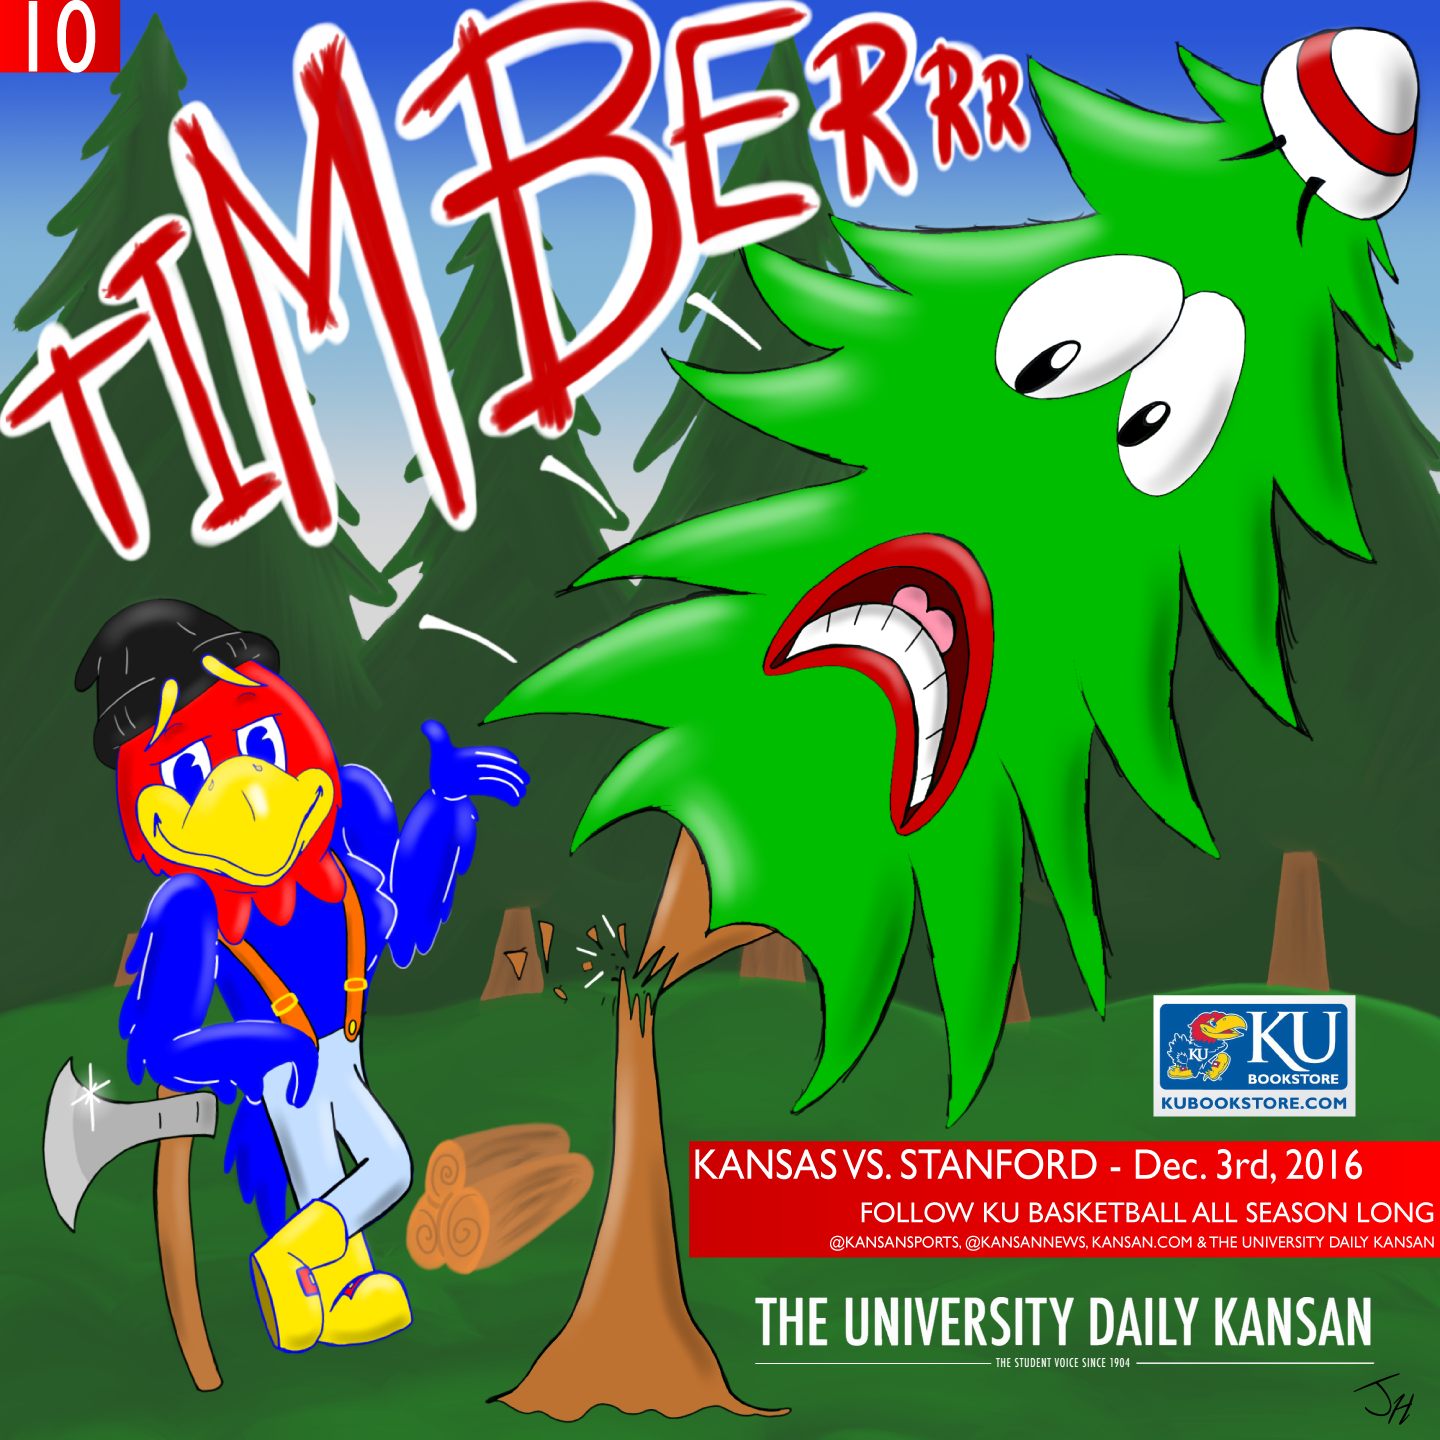 University Daily Kansan Basketball Gameday Poster - Stanford 2016